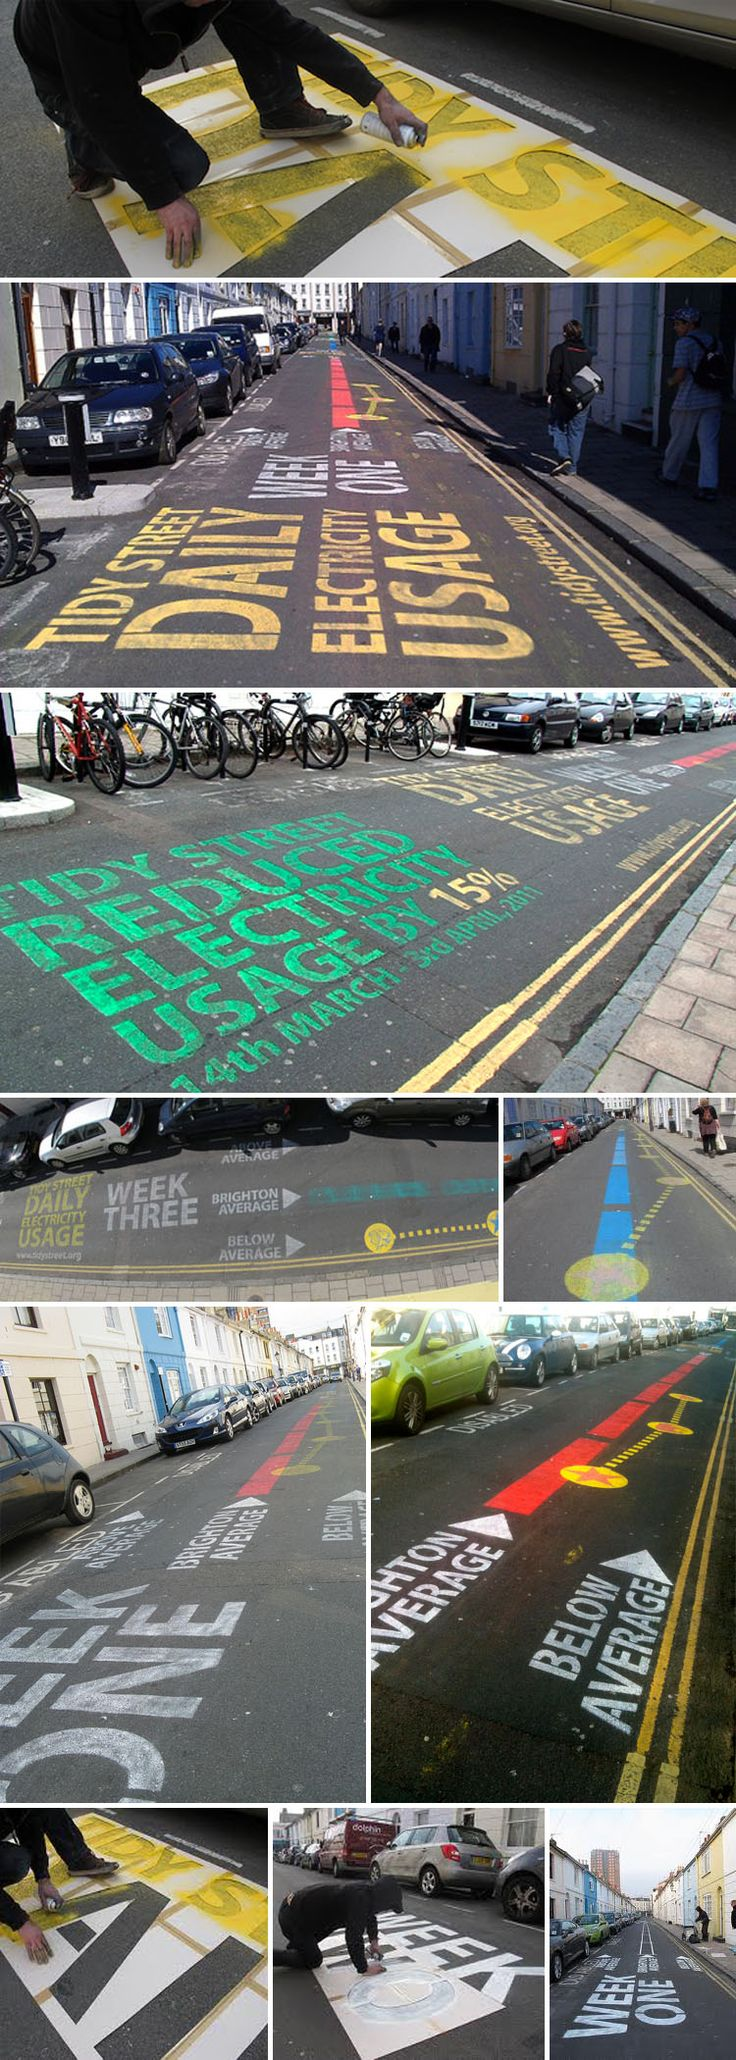 the_tidy_street_pro environmental behaviour change in Brighton, England, UK project_urbanized_collabcubed.jpg (750×2100)